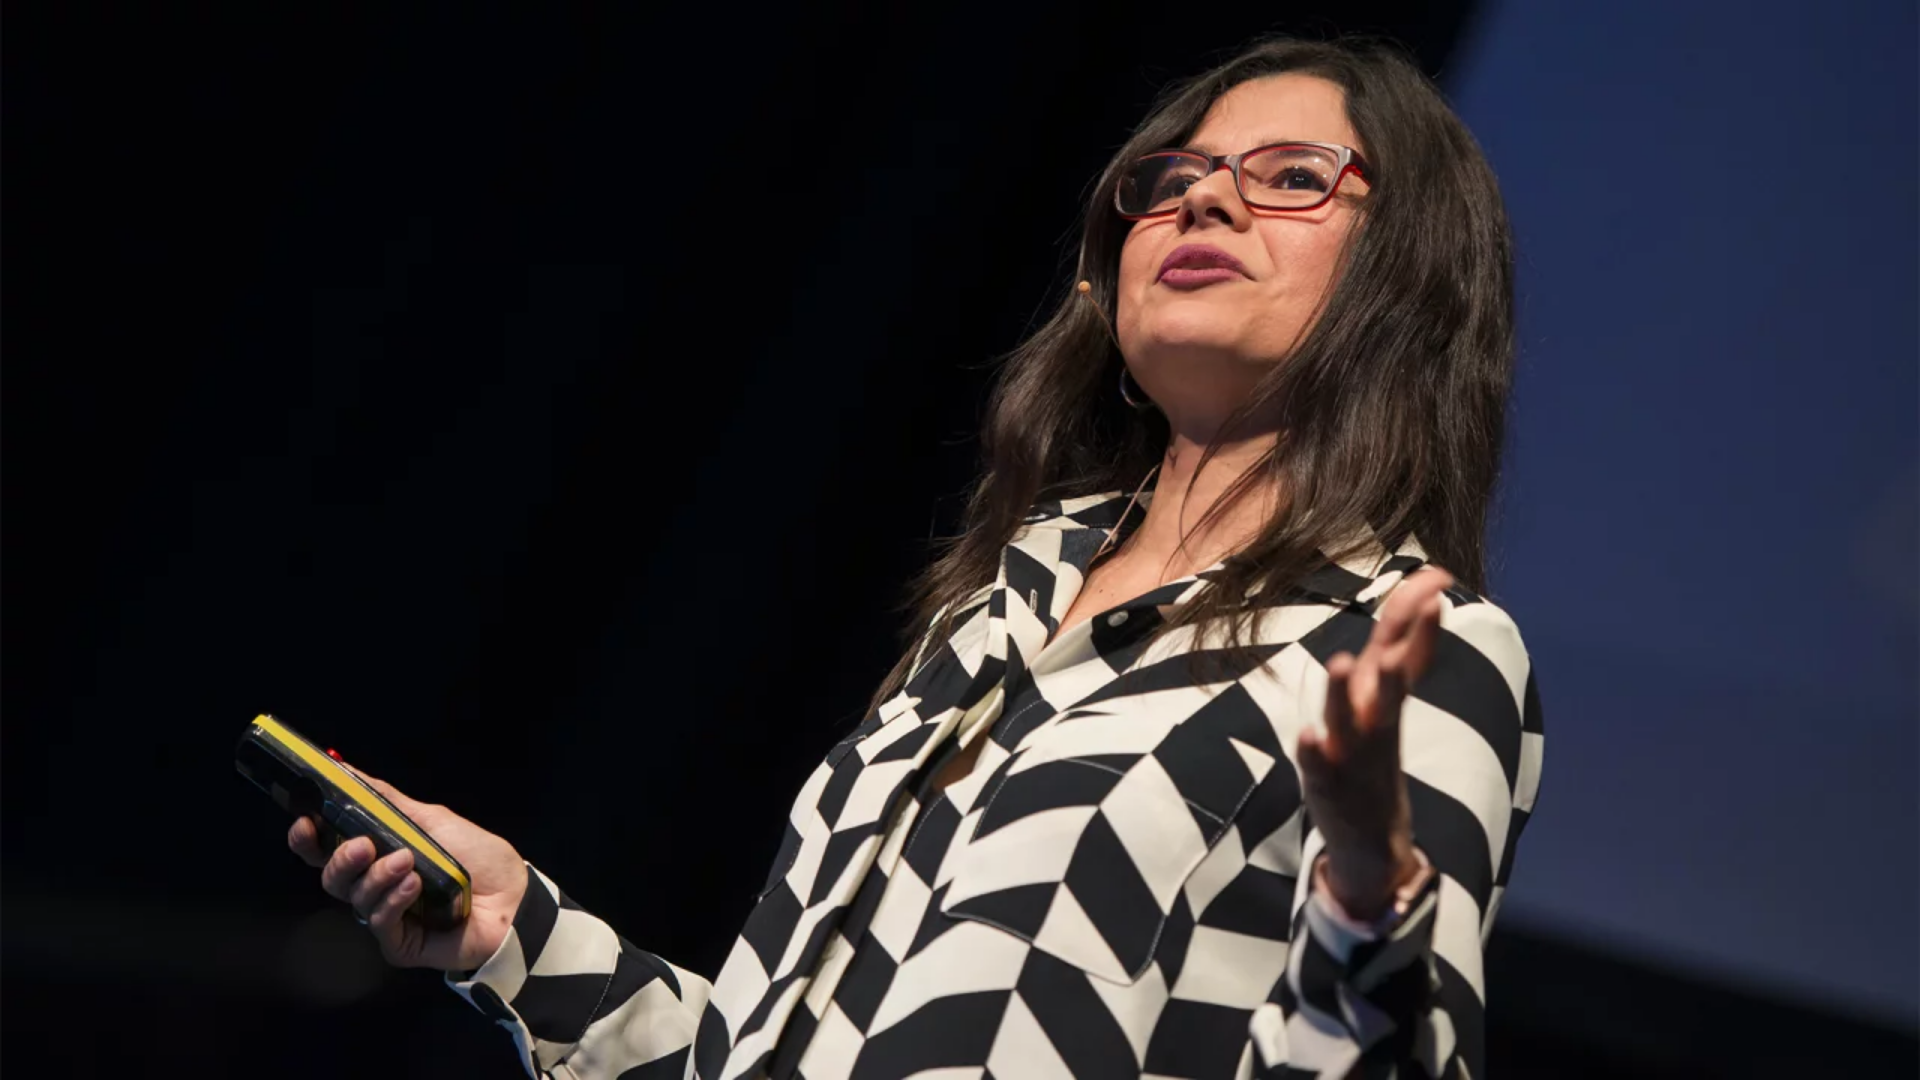 Aleyda Solís, wearing a black and white striped shirt and red framed glasses, standing on a stage doing a talk.